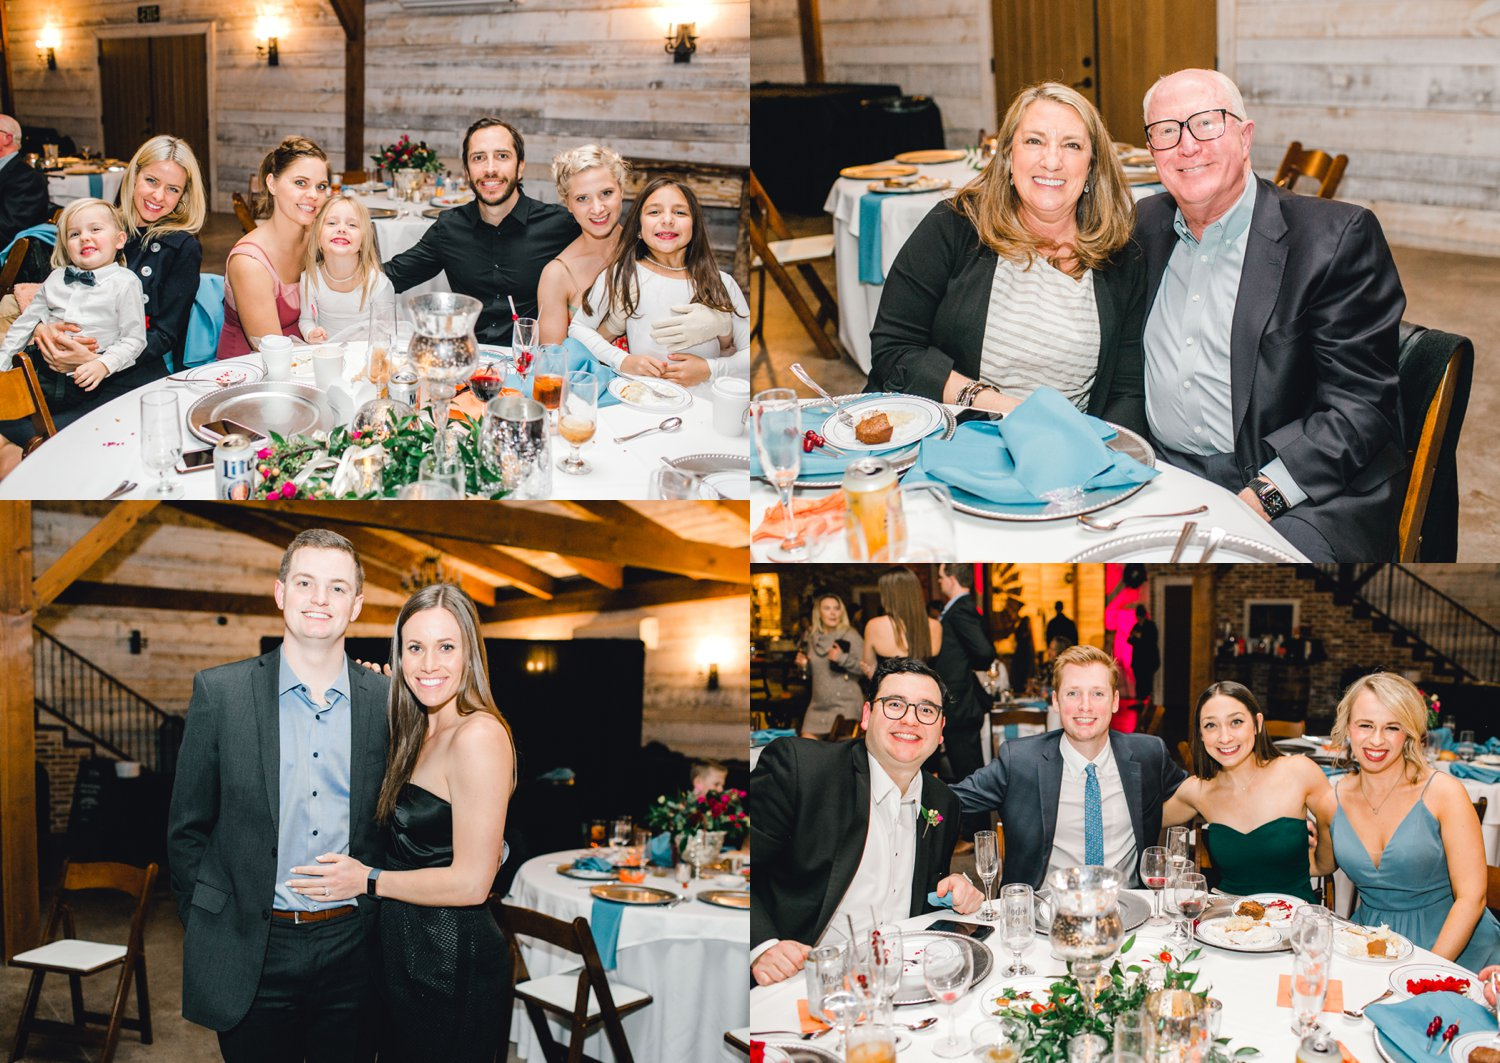 ANNIE_AND_JIMMY_MATTHEWS_EBERLEY_BROOKS_EVENTS_0151.jpg